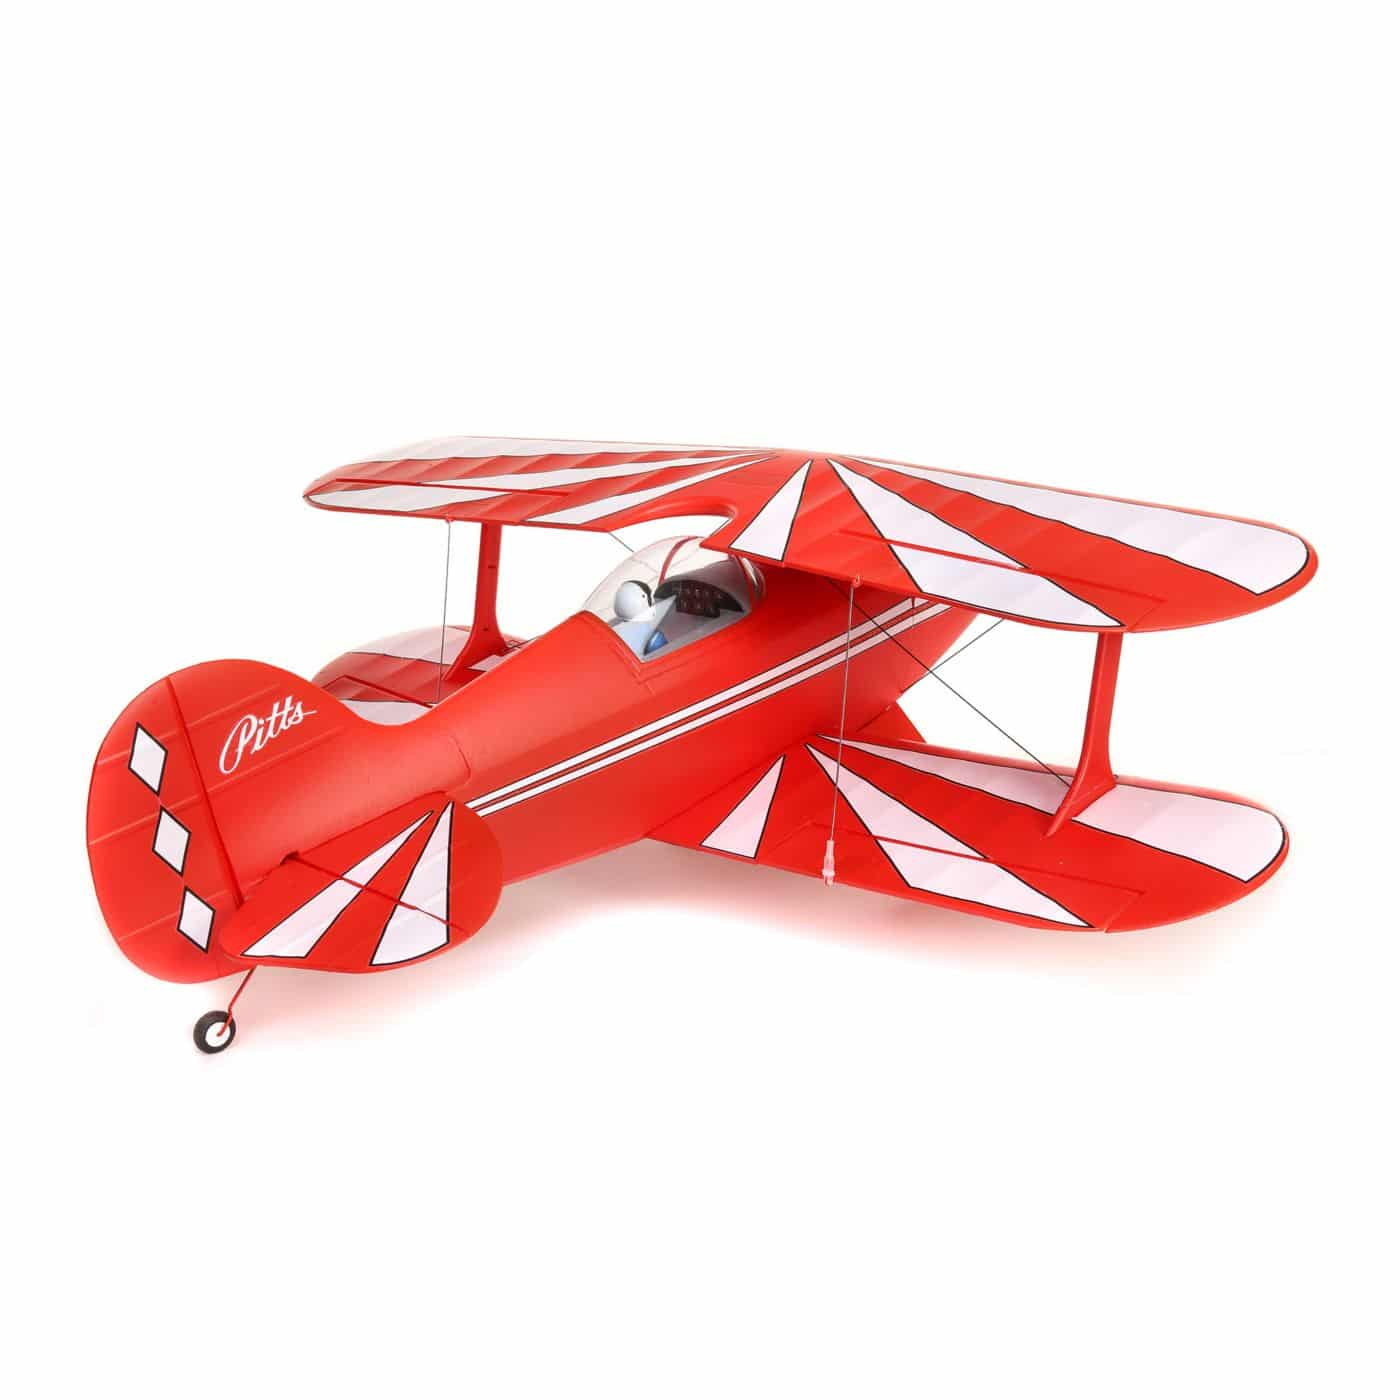 Pitts S-1s 850mm Pnp